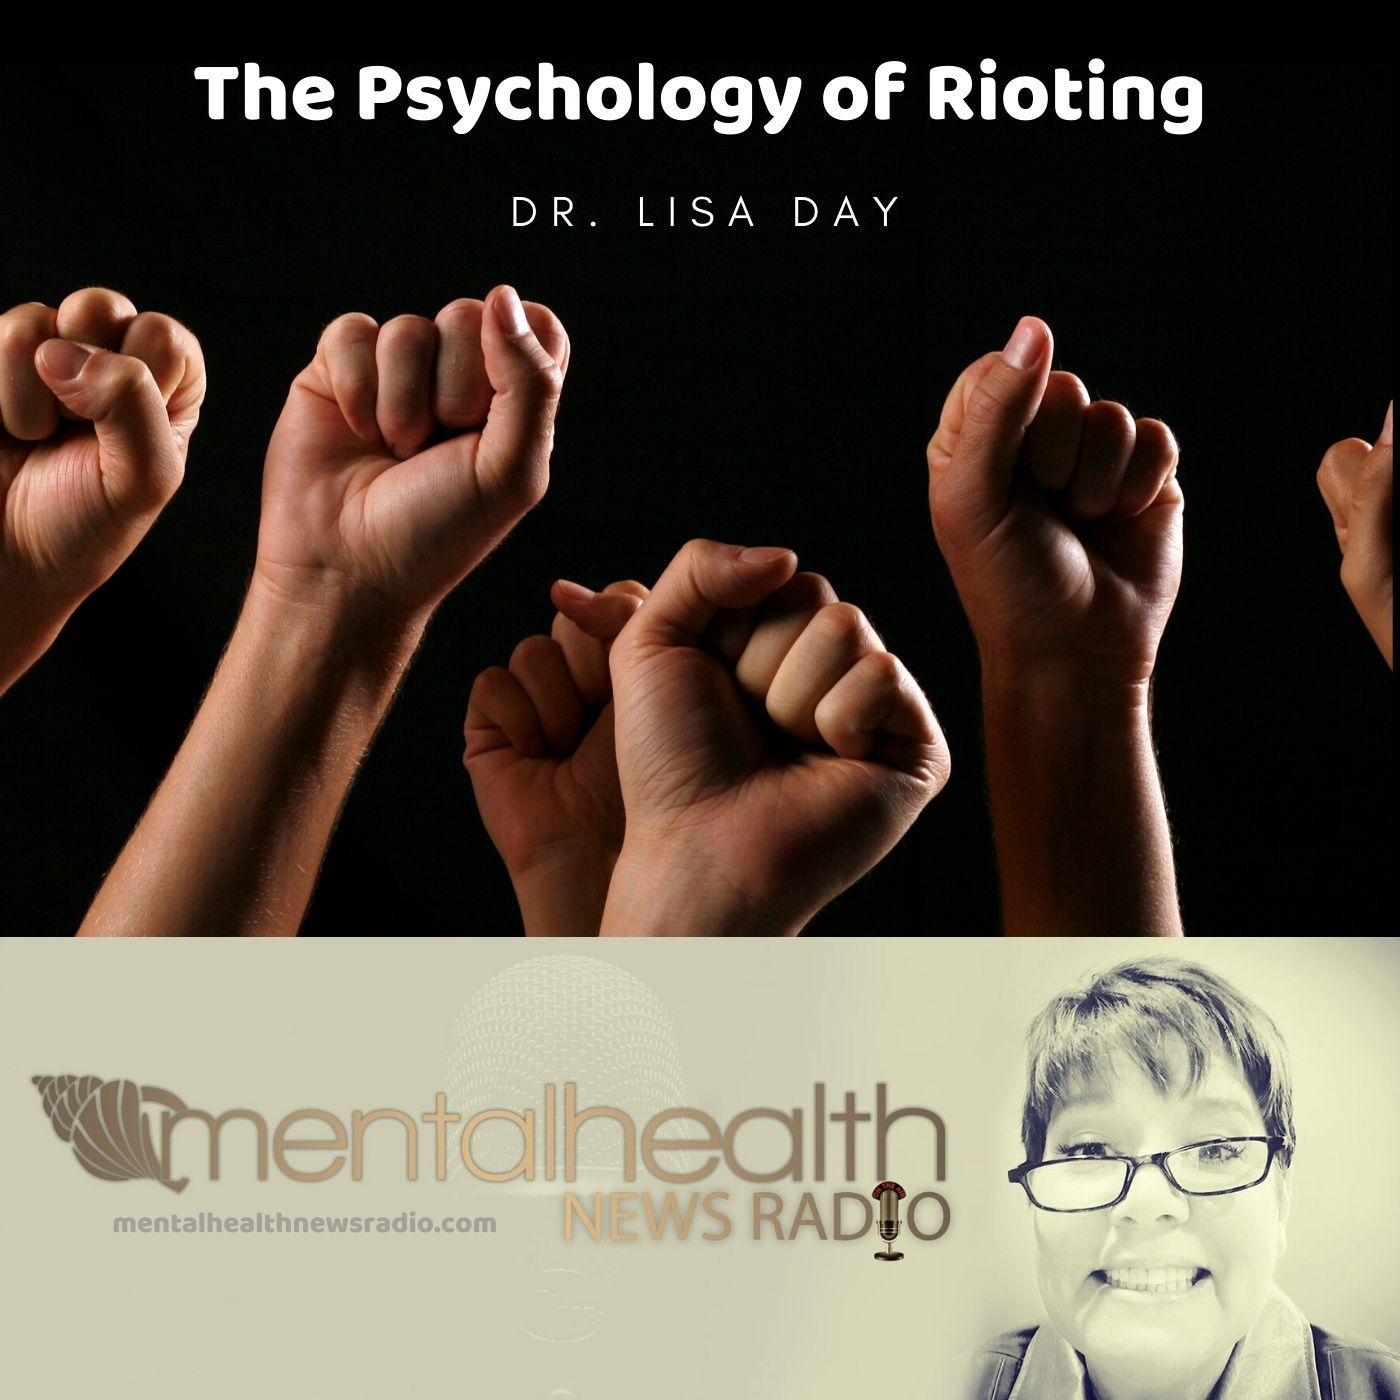 Mental Health News Radio - The Psychology of Riots with Dr. Lisa Day